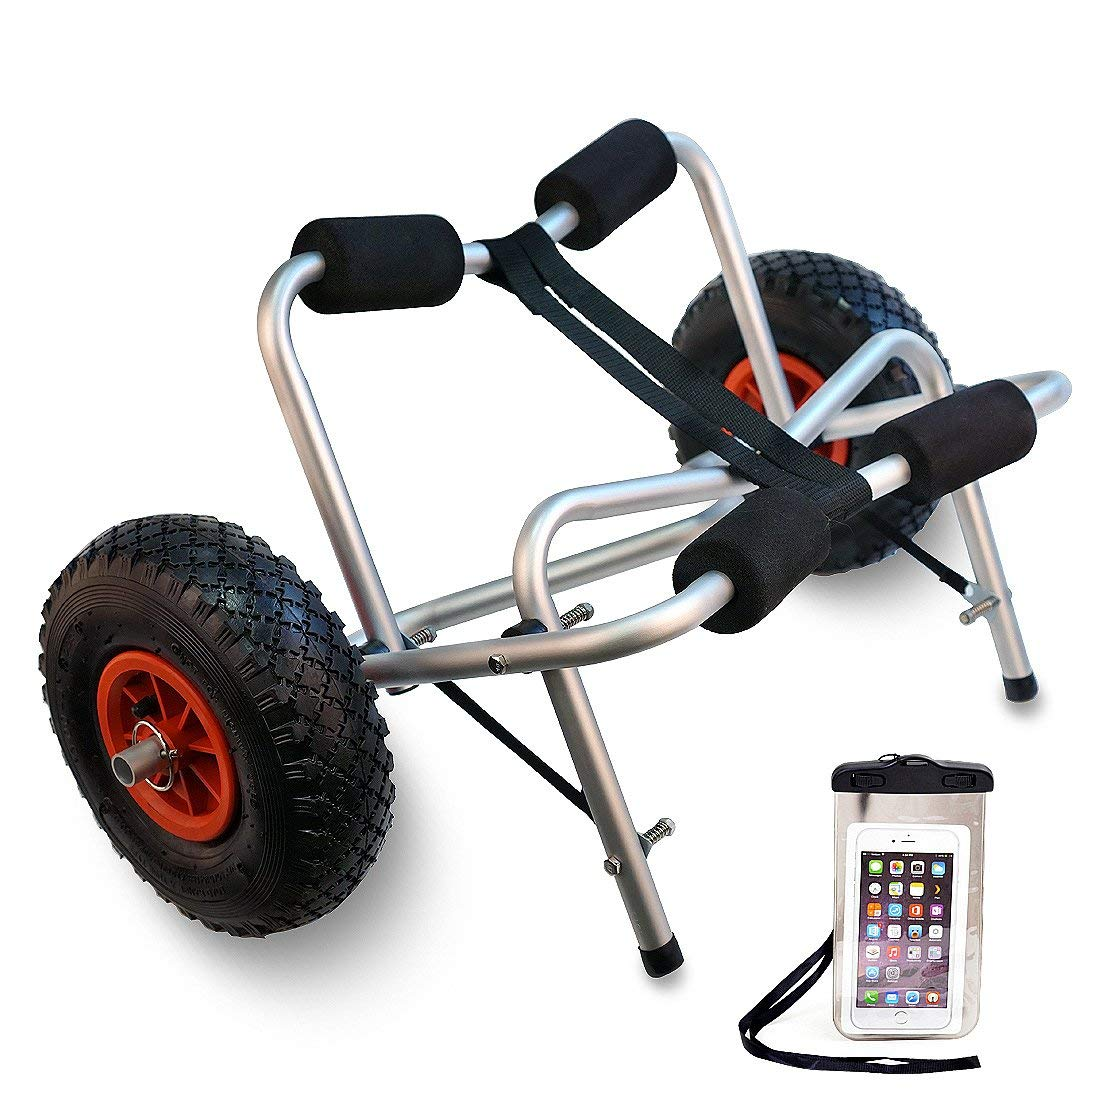 Calhome Boat Kayak Canoe Carrier Transport Trailer Tote Trolley Dolly Wheel w/Free Cell Phone Bag